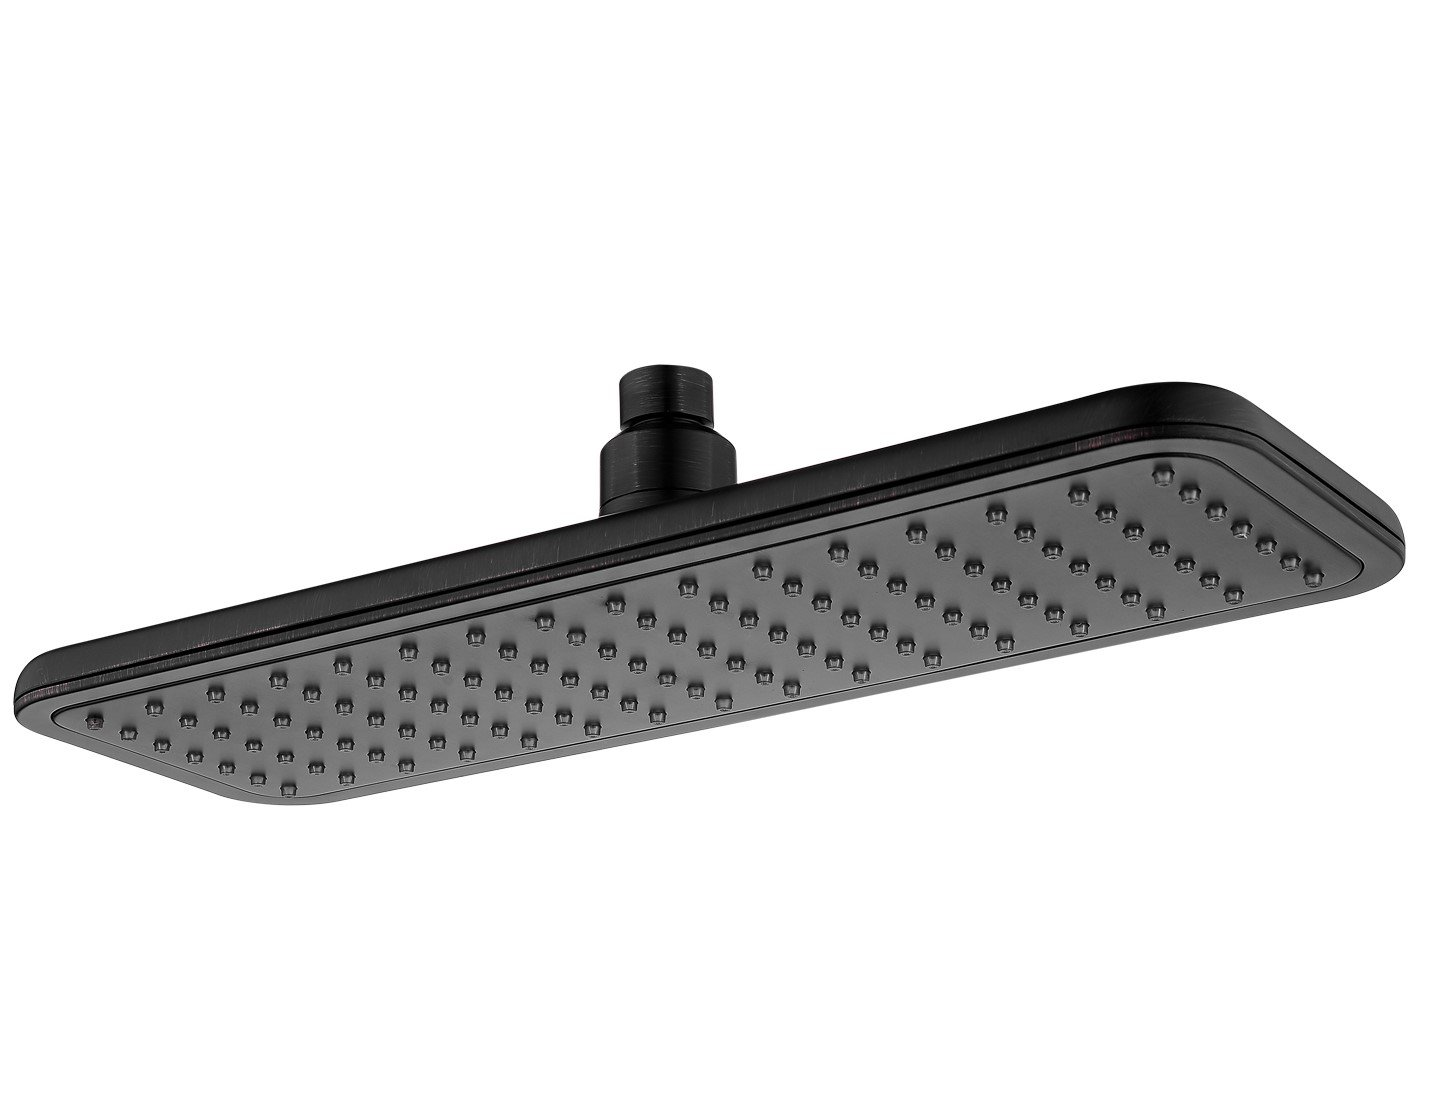 14 Inch Rain Shower Head Covering with Silicone Nozzle and Powerful Spray Performance